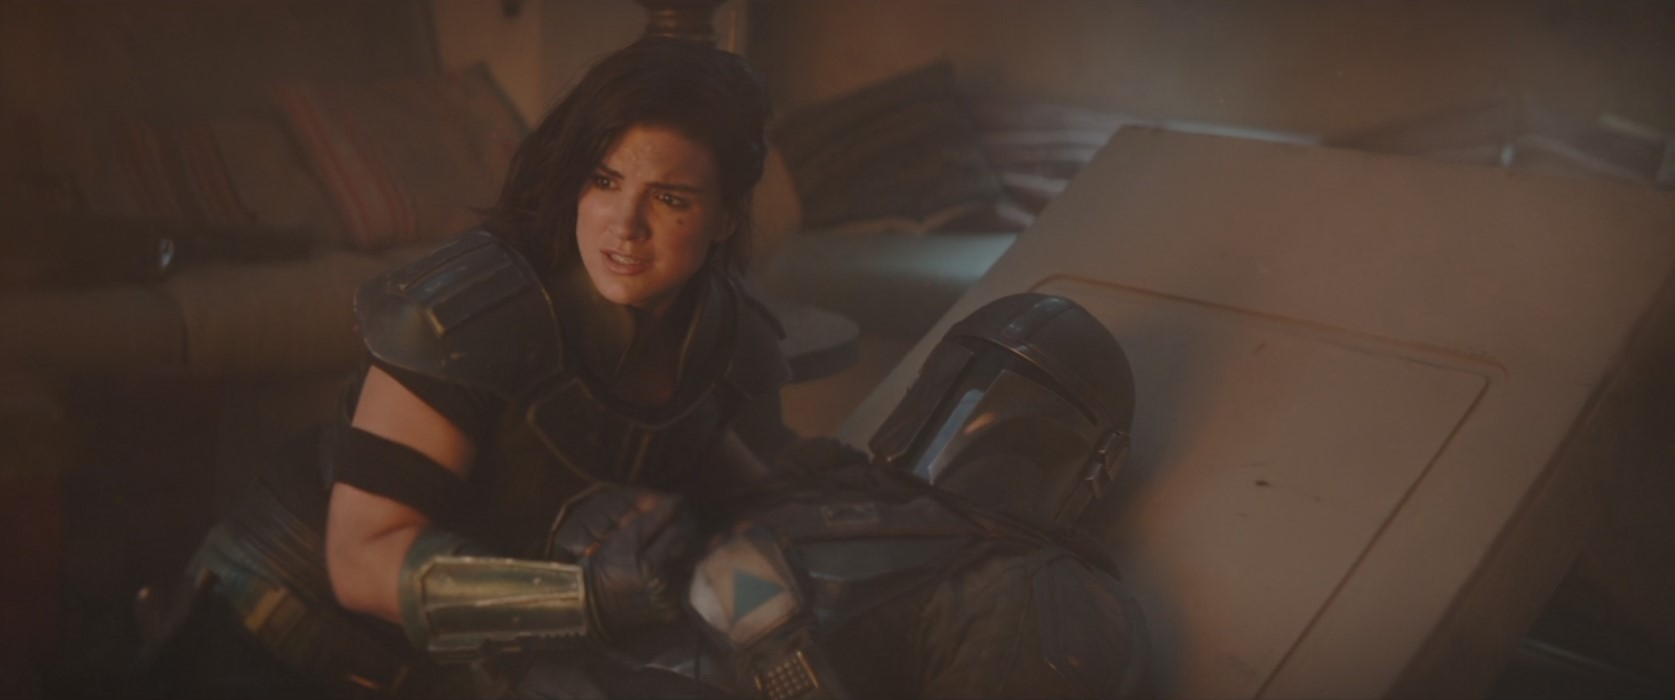 Pedro Pascal and Gina Carano in The Mandalorian (2019)